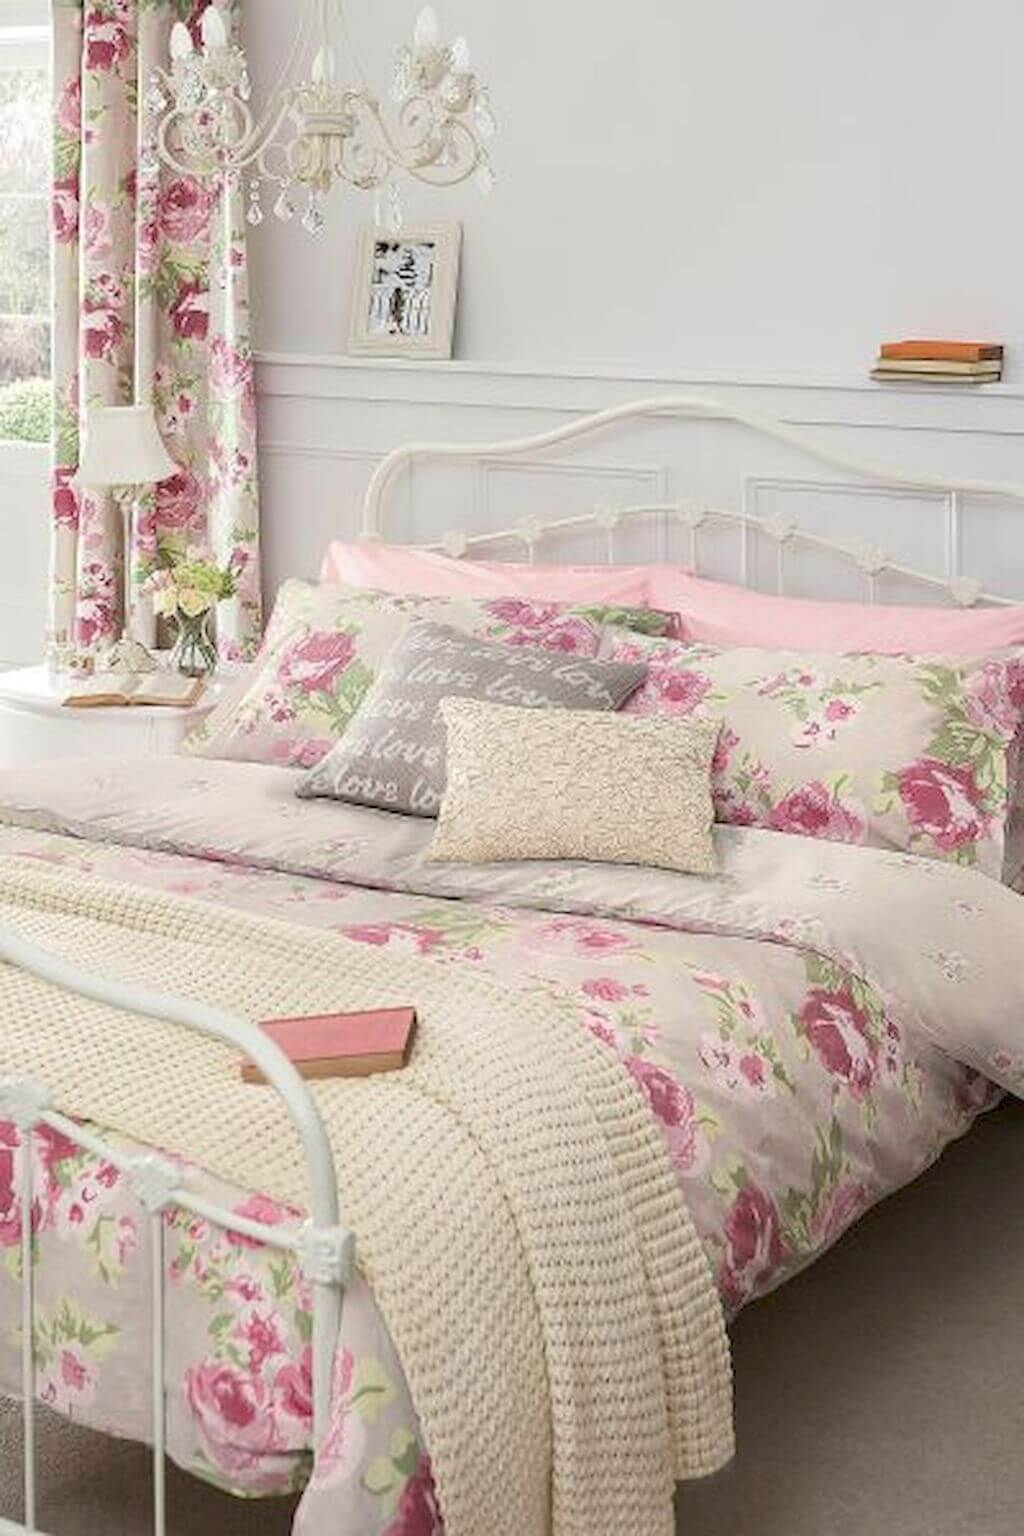 25 Fashionable Shabby Chic Bedroom (All Are Stylish!) - Q12